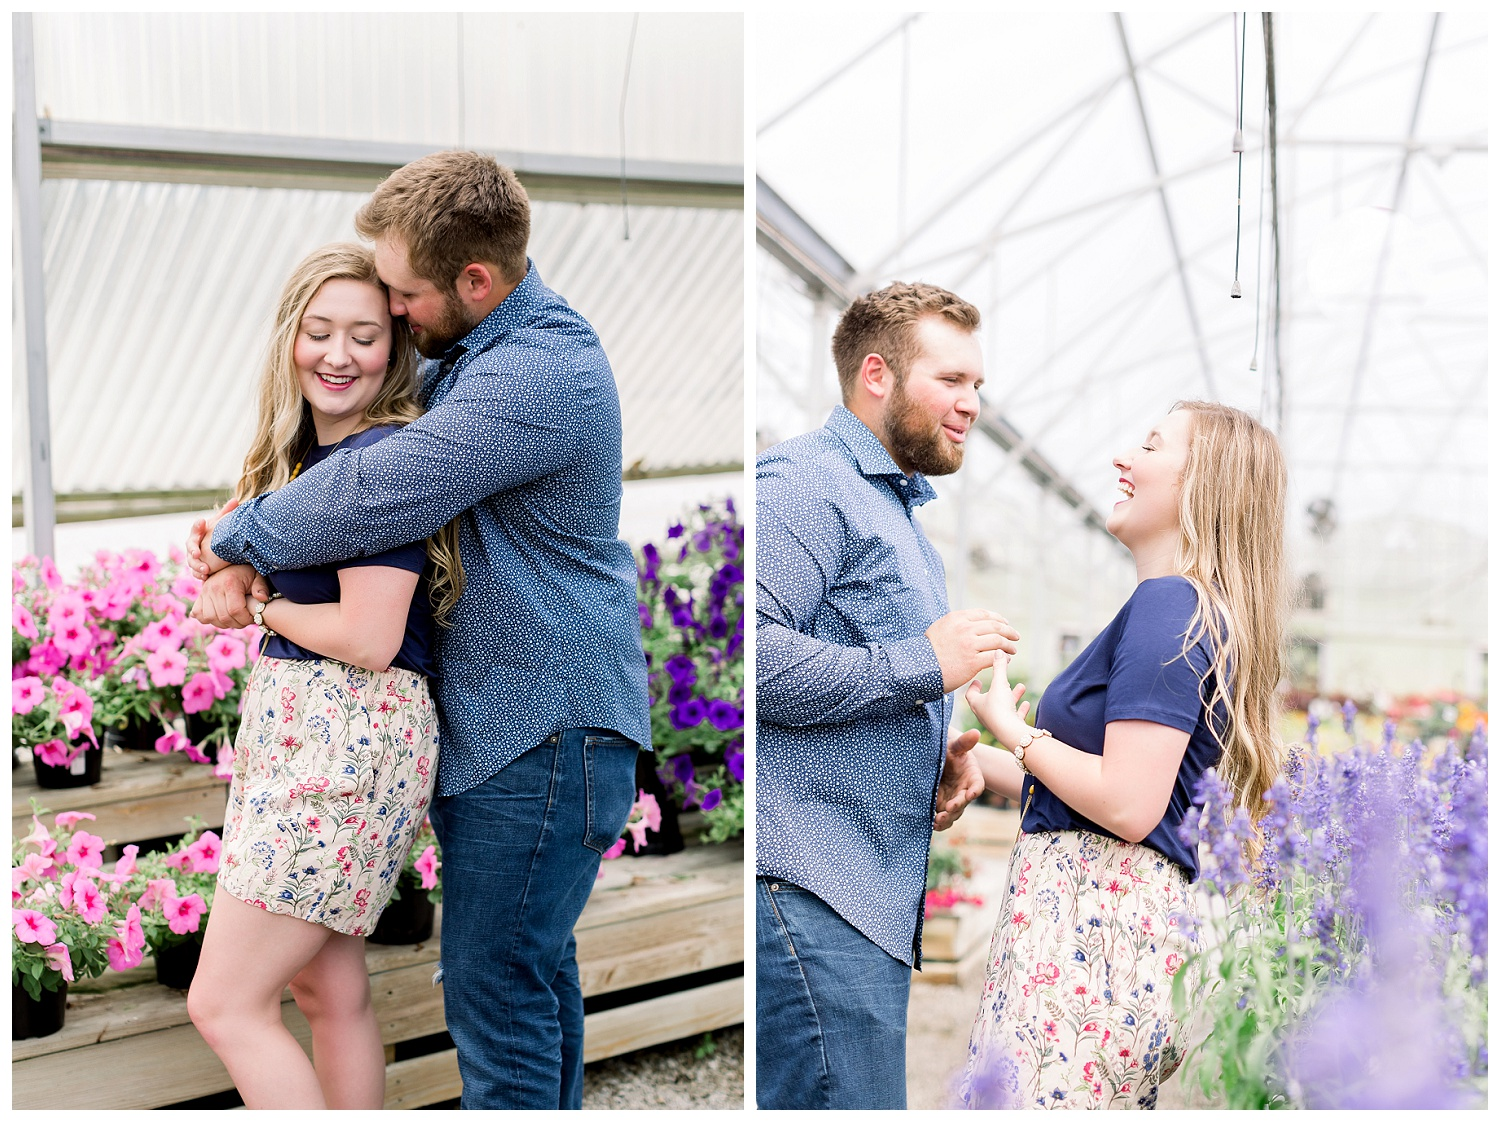 Engagement session at Farrand Farms